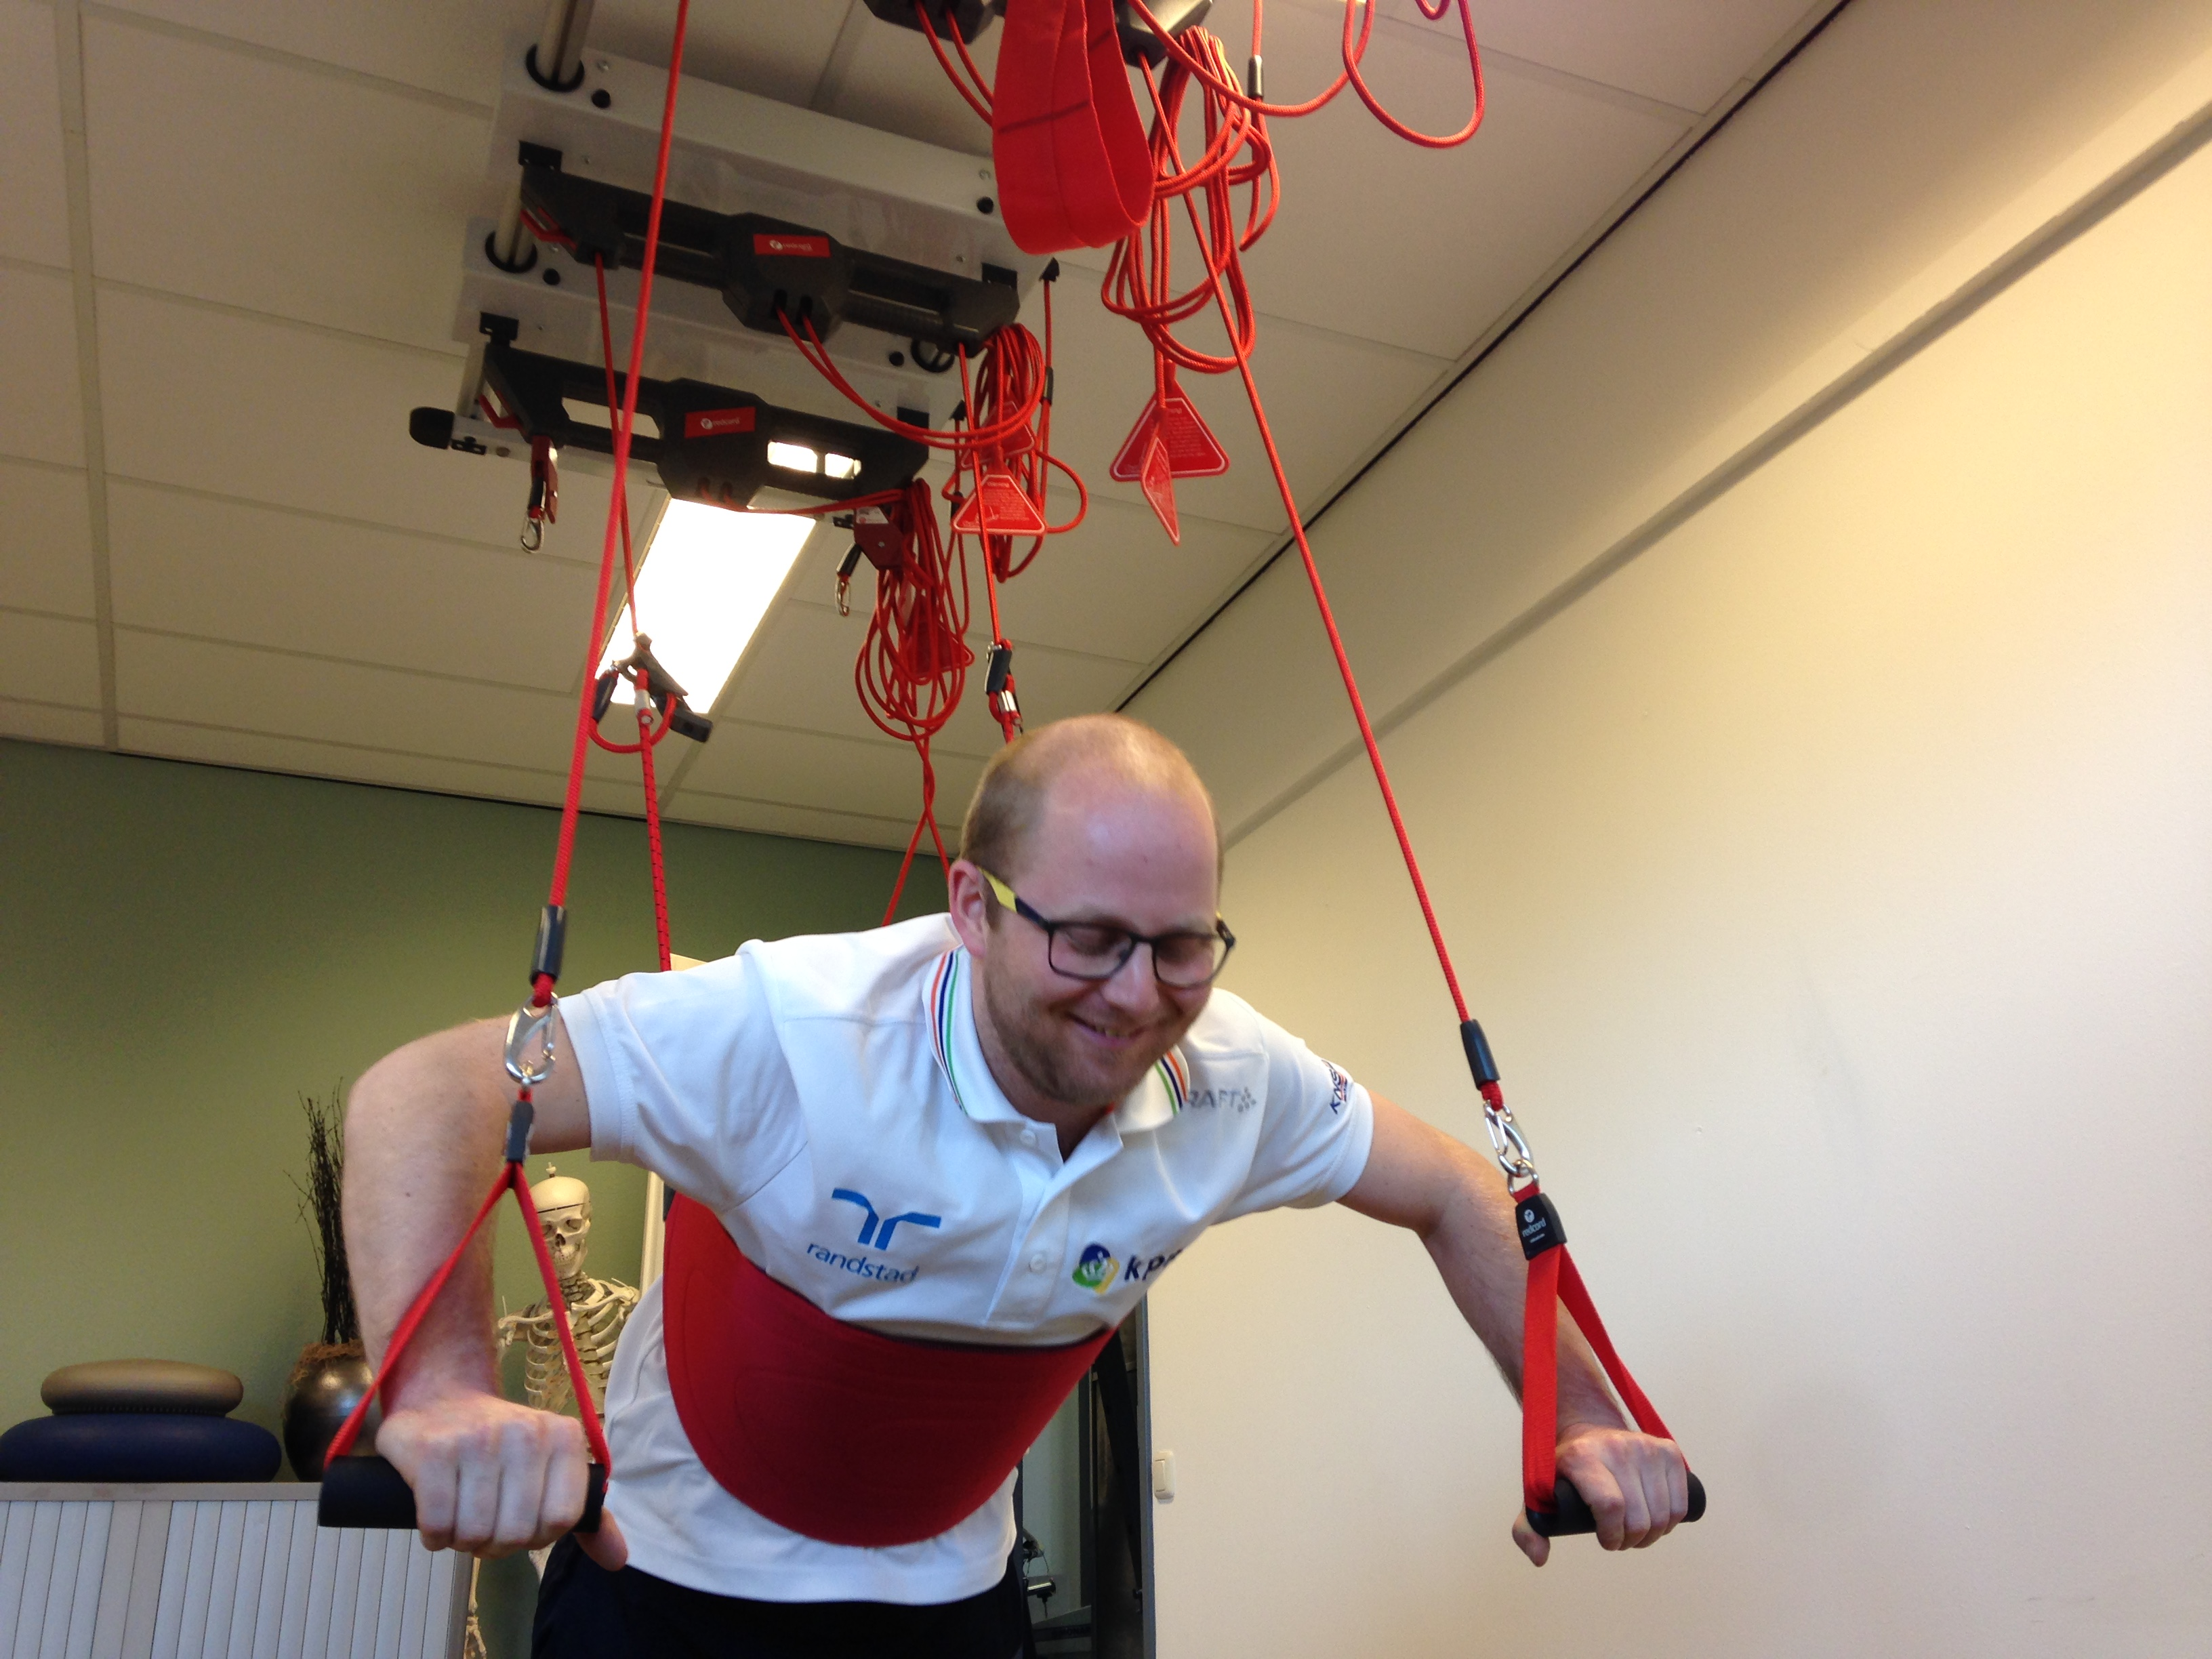 Redcord therapie in De Vesteynde